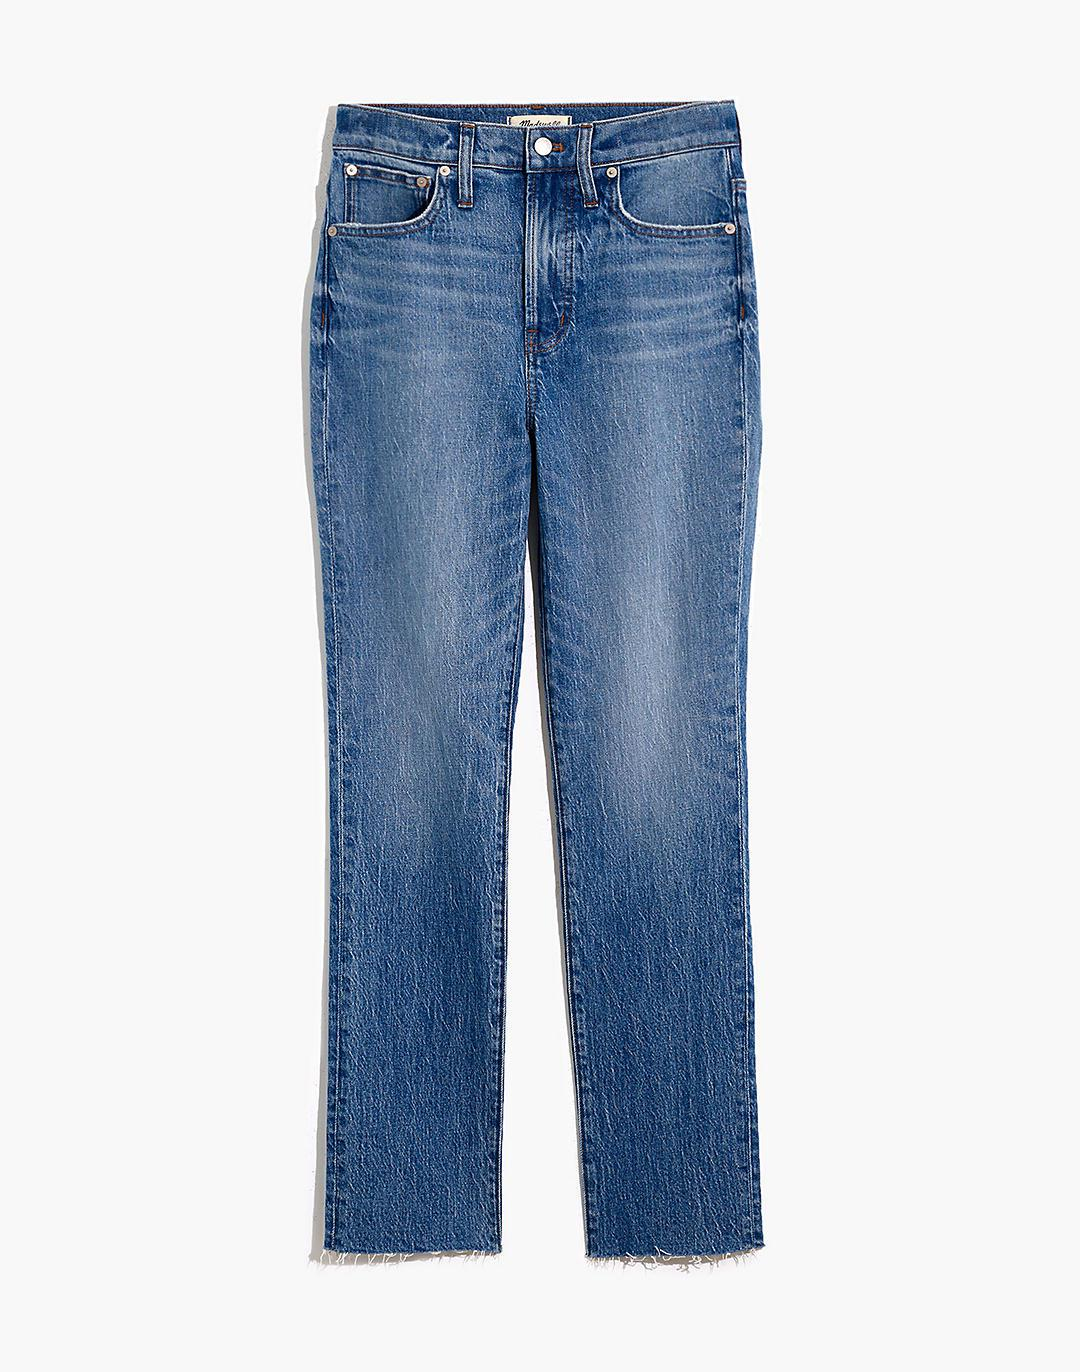 The Perfect Vintage Jean in Enmore Wash: Raw-Hem Edition 5